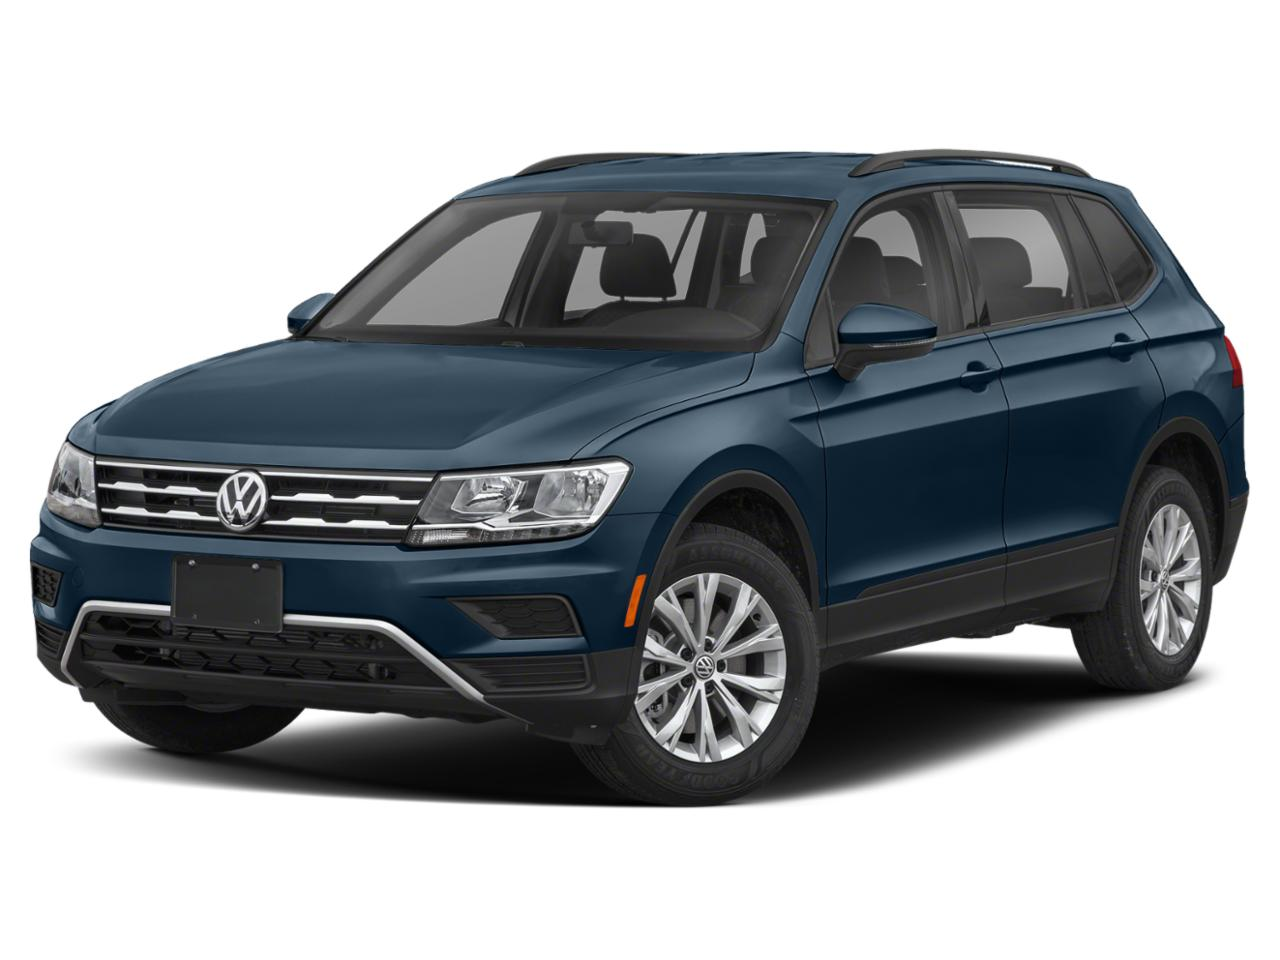 2020 Volkswagen Tiguan Vehicle Photo in Oshkosh, WI 54904